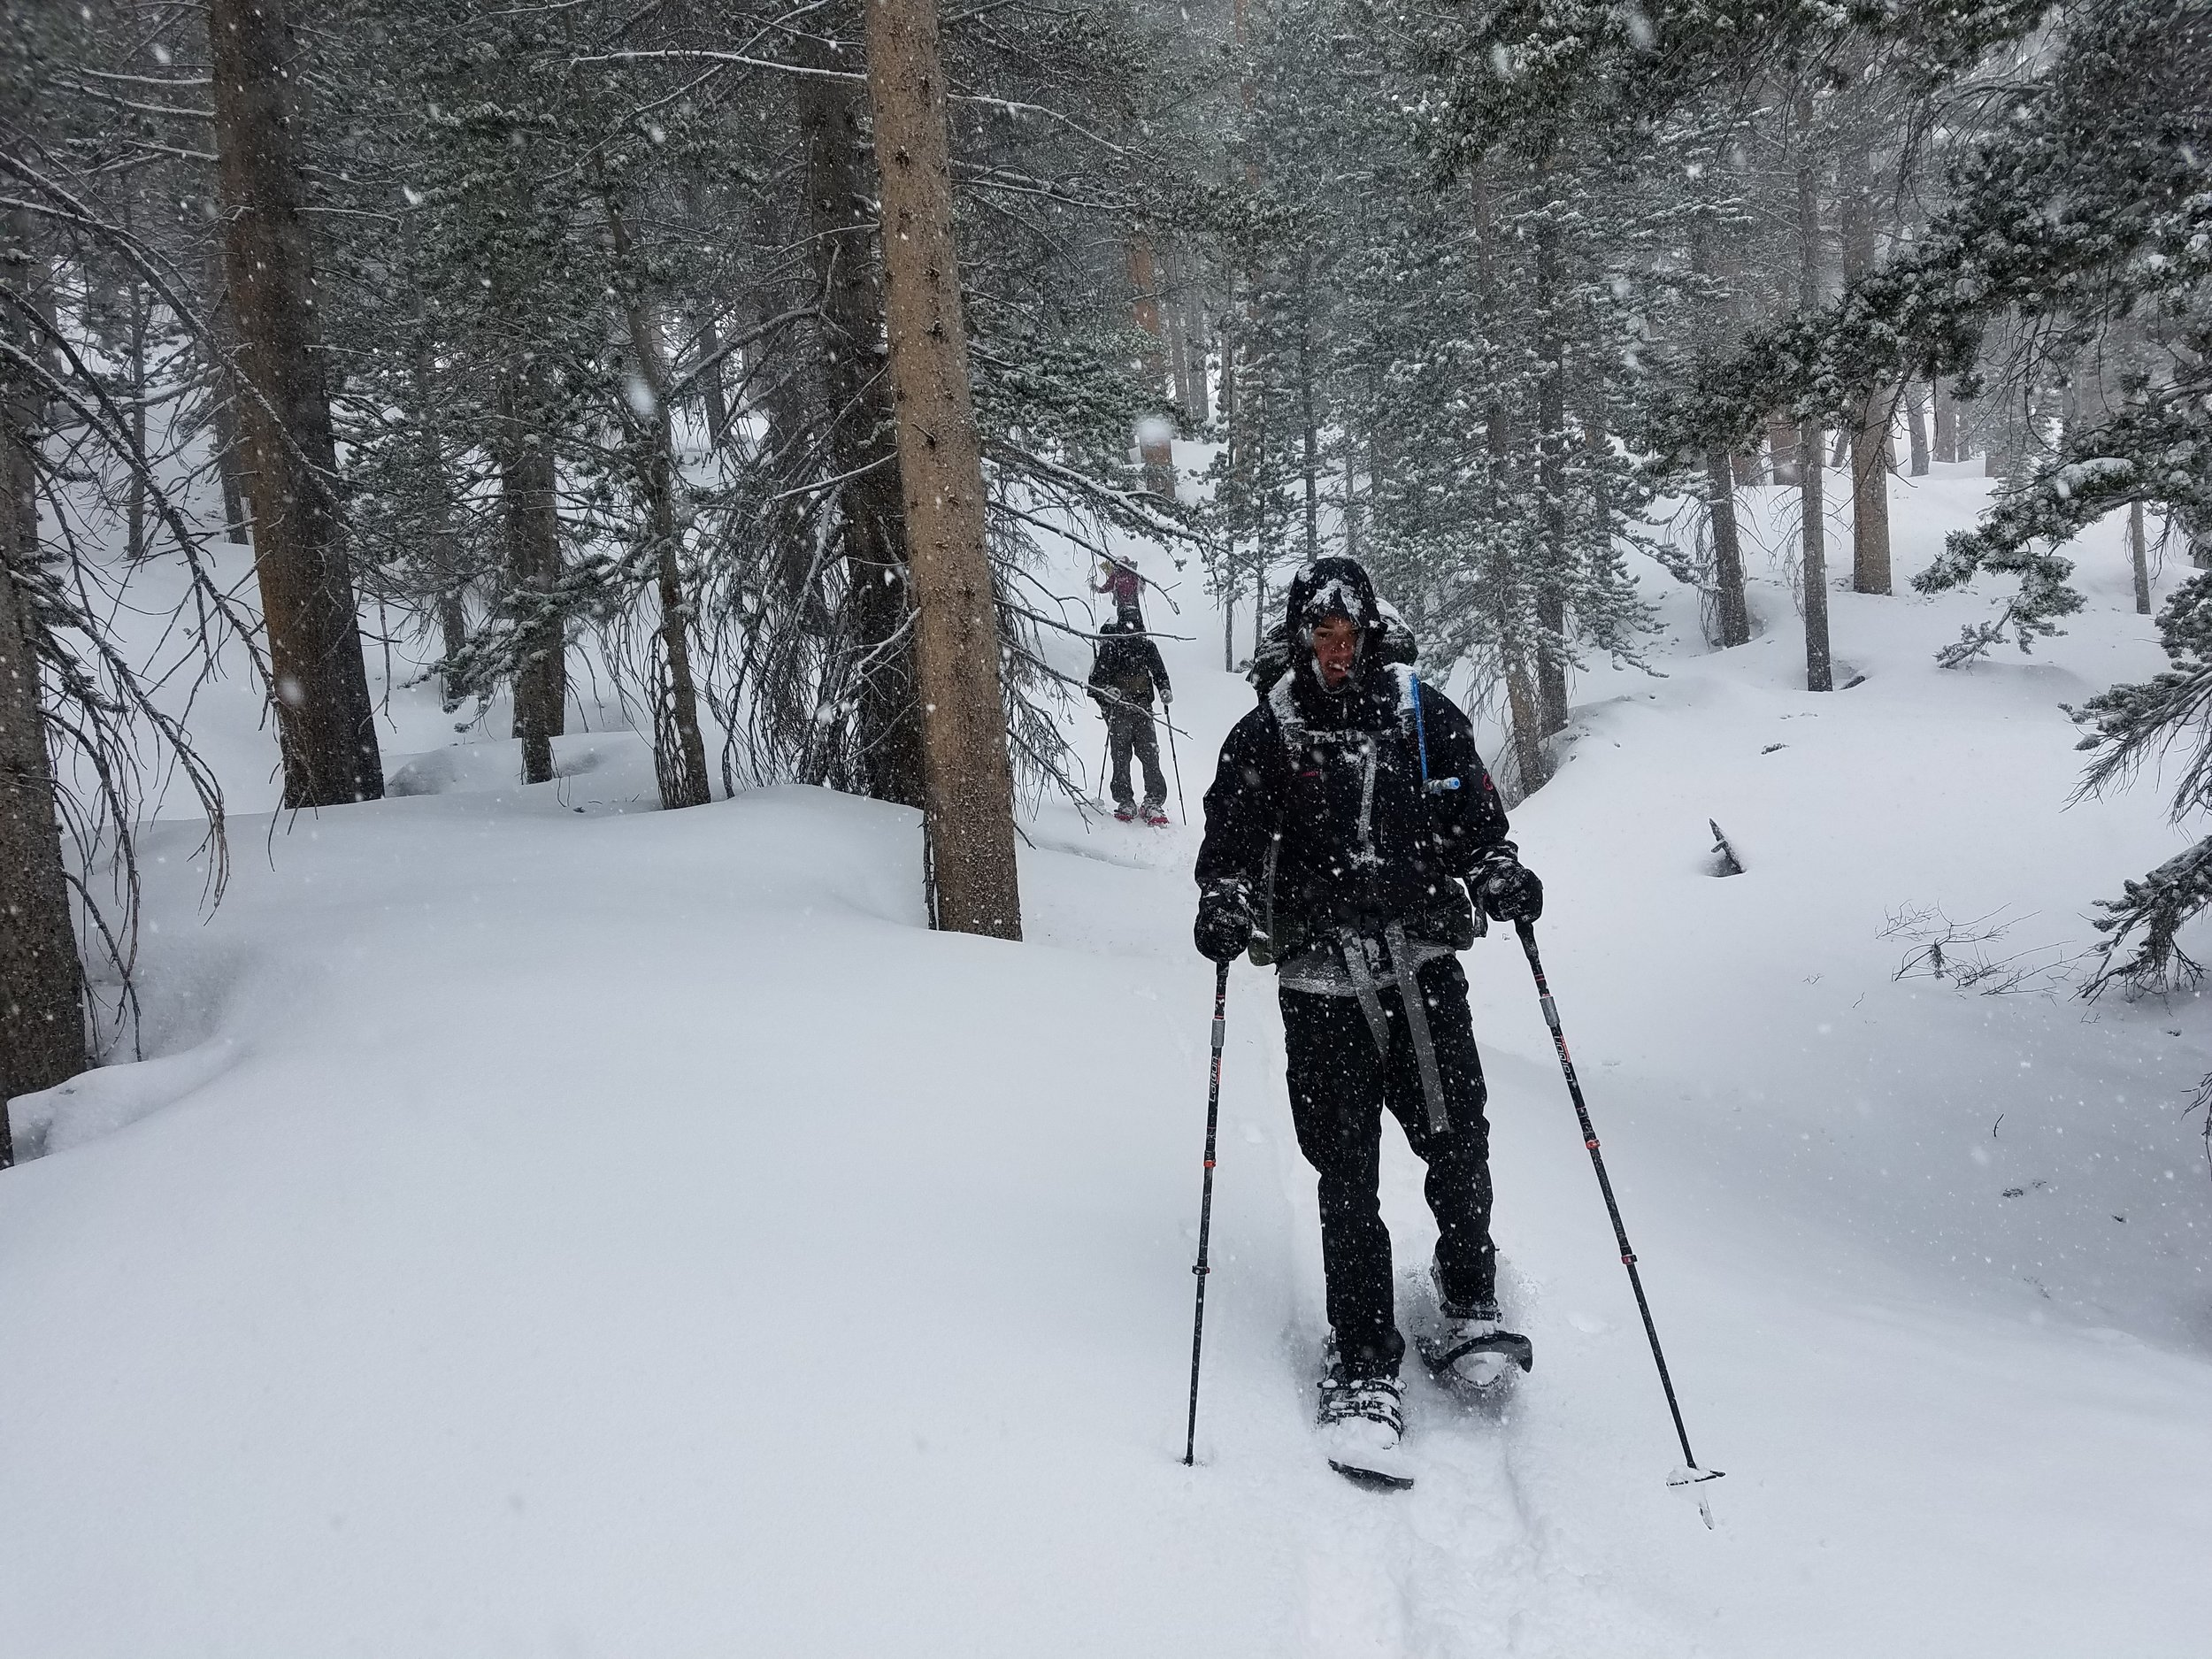 Headed out of the storm on the east side of Cottonwood Pass.